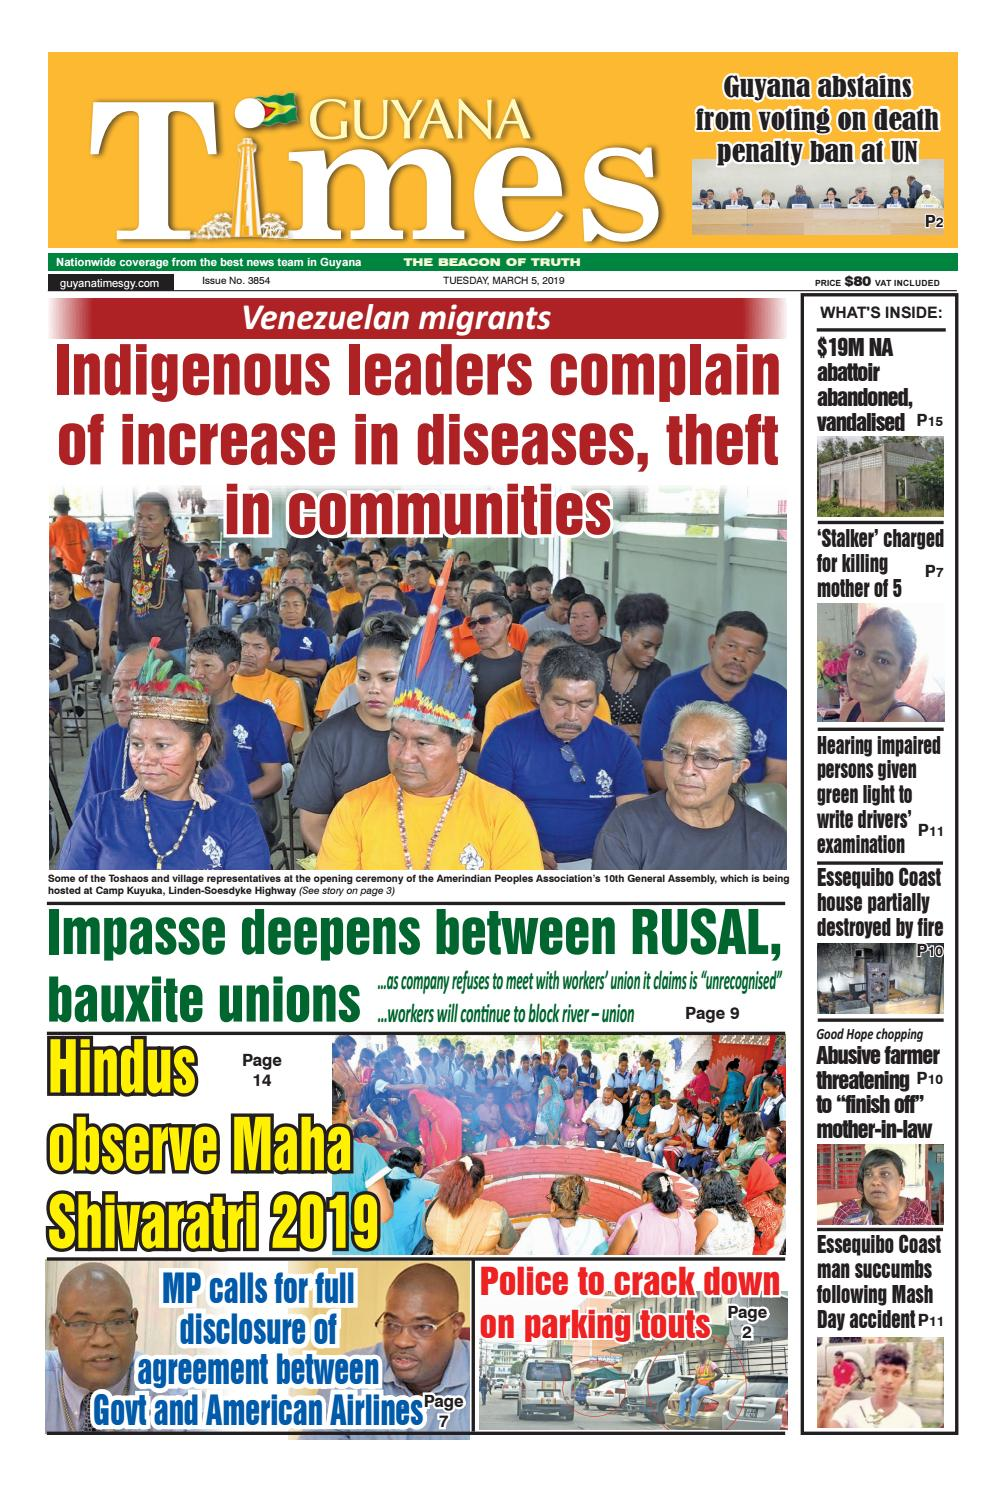 Guyana Times - Tuesday, March 5, 2019 by Gytimes - issuu